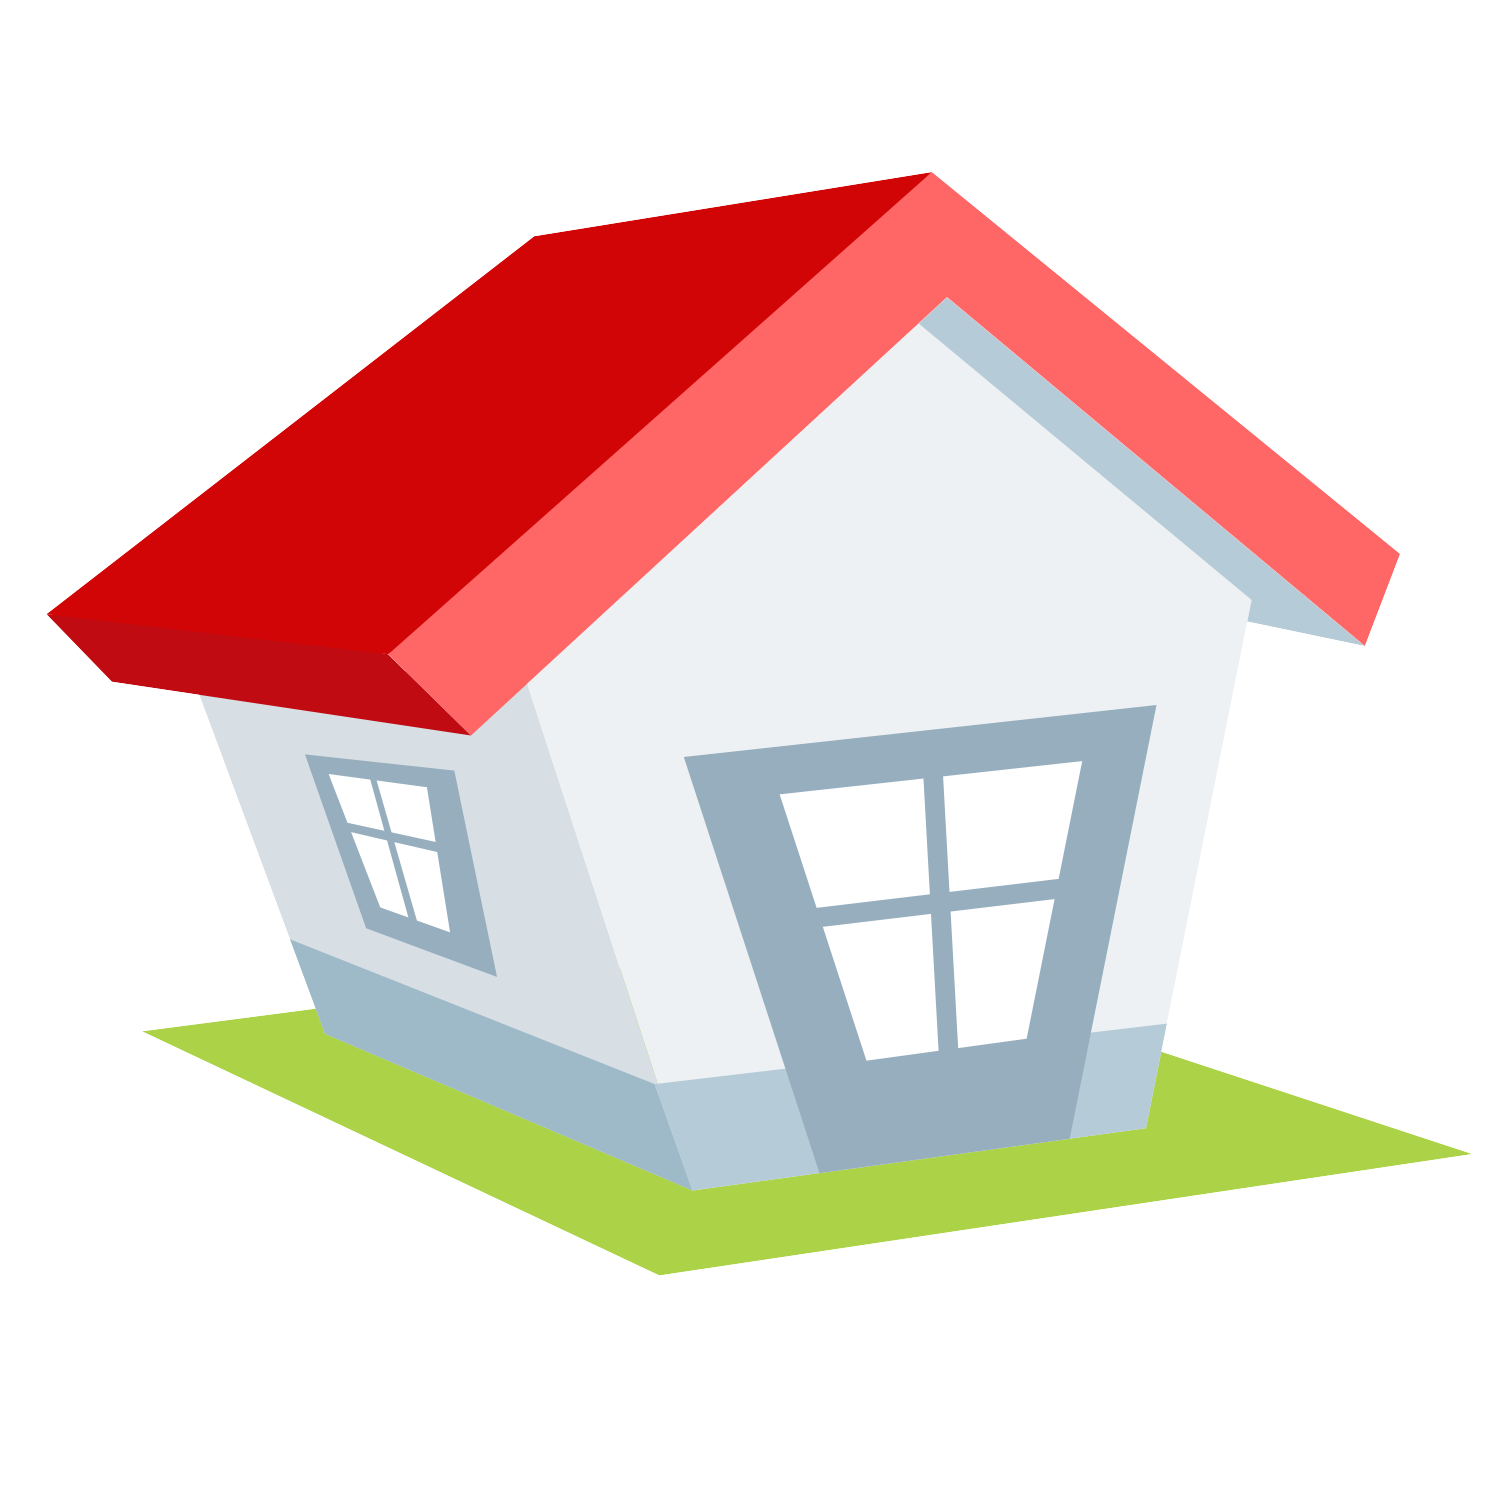 House to use for logo clipart graphic royalty free download House to use for logo clipart - ClipartFest graphic royalty free download